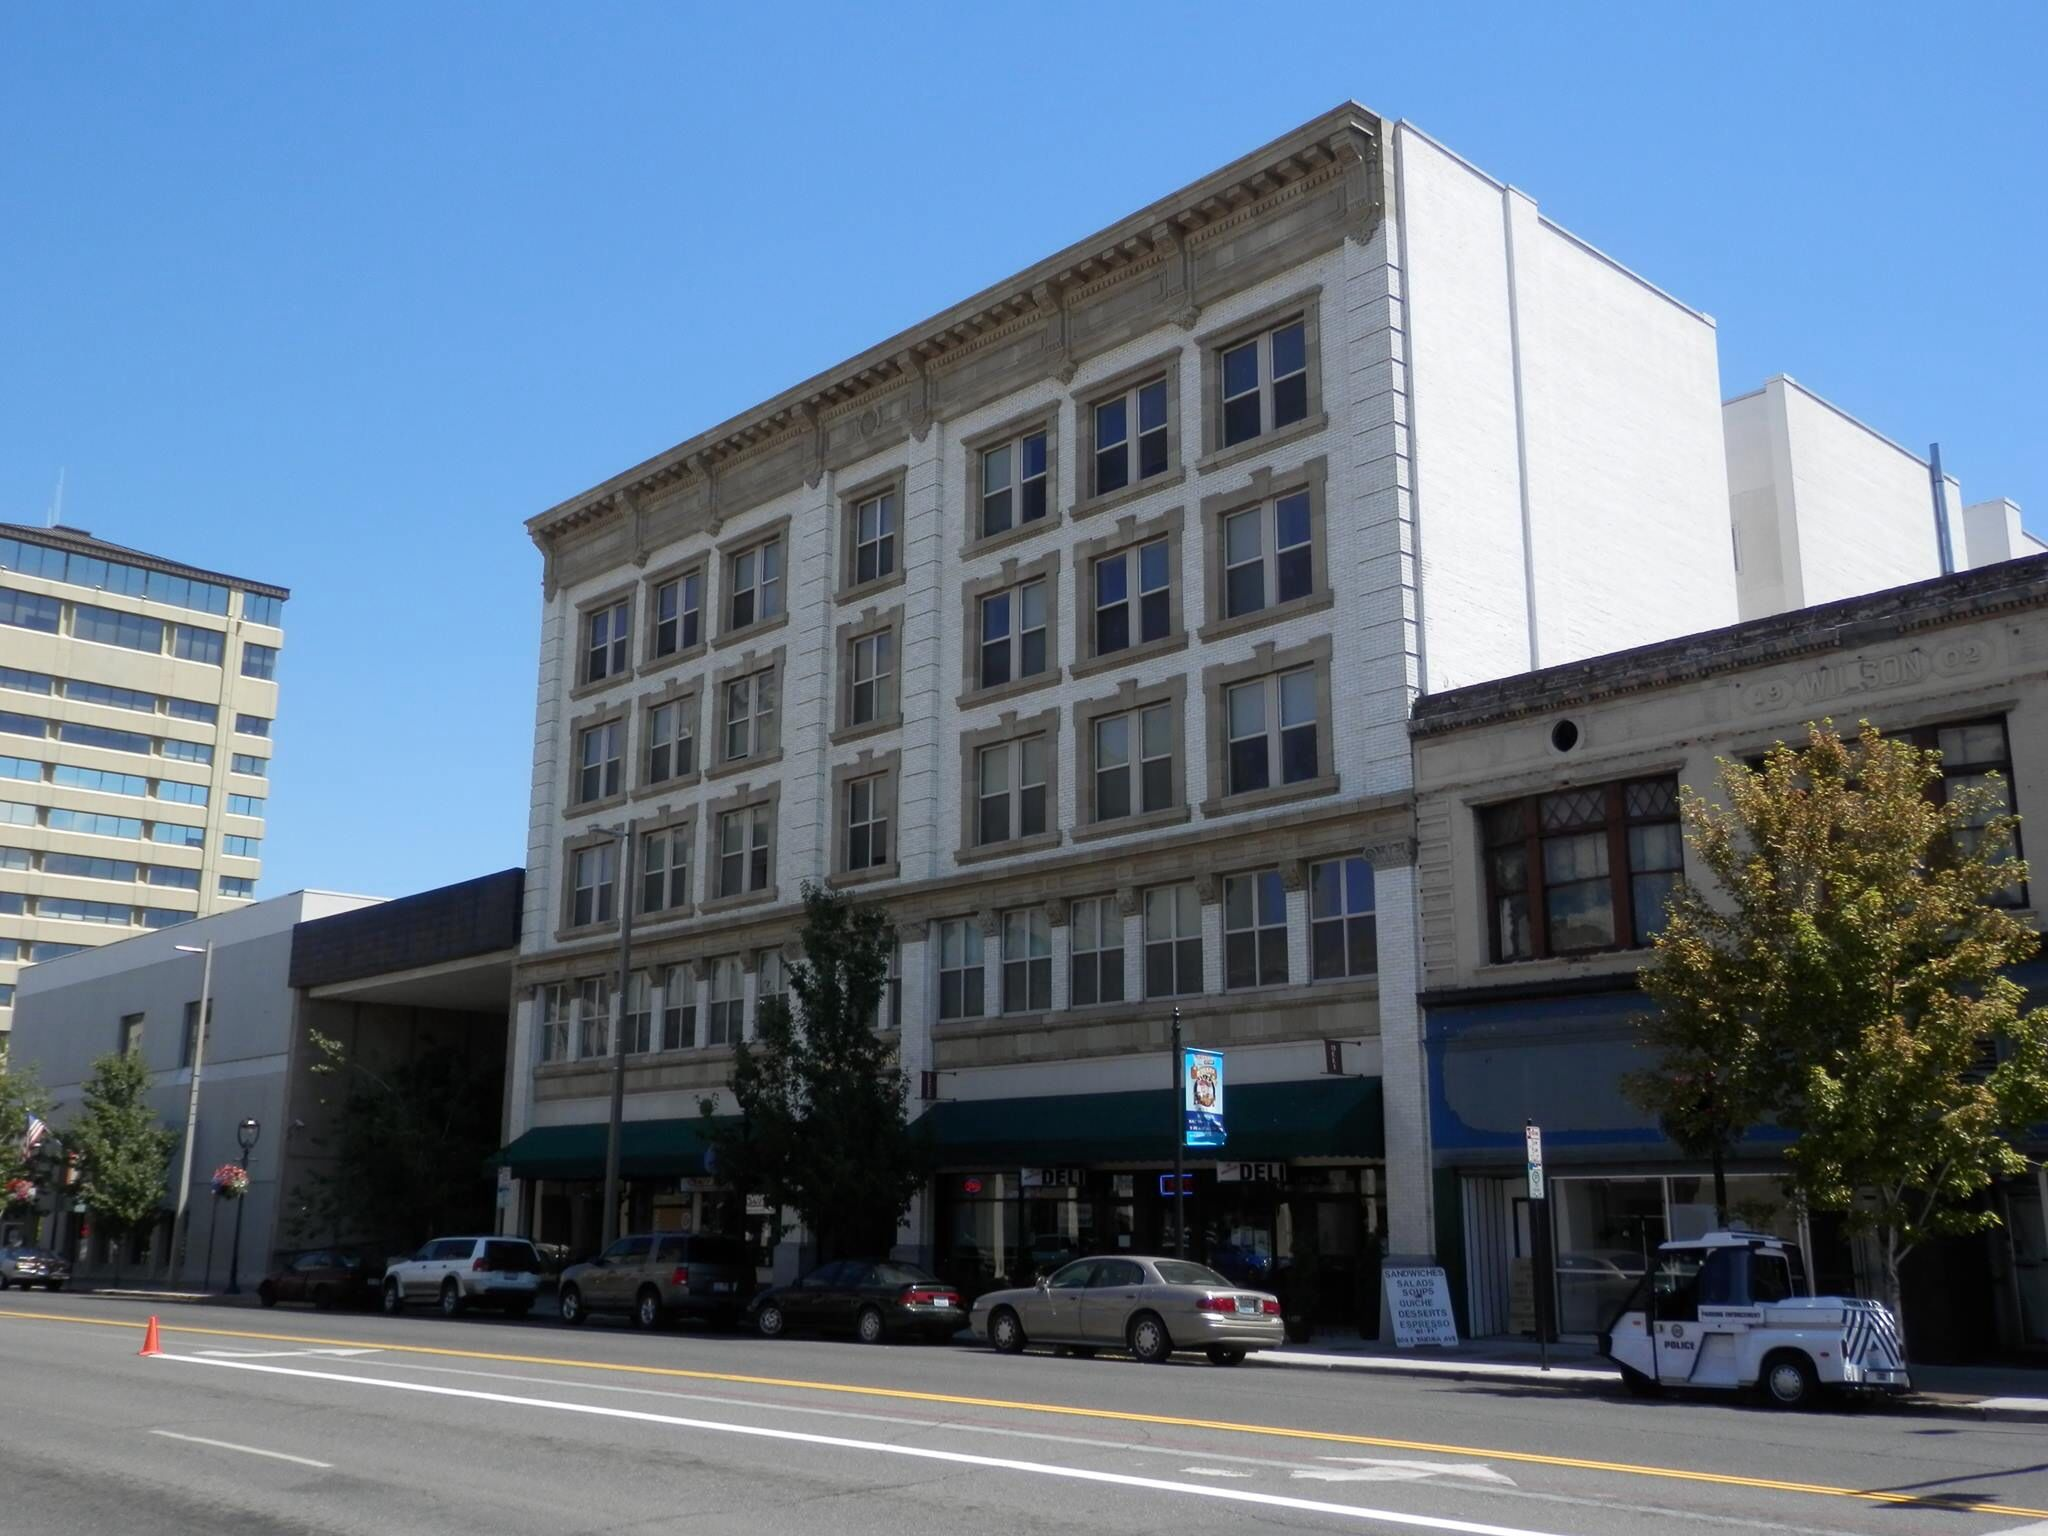 Commercial Hotel Now Low Income Senior Housing On Upper Floors Https Seniorsource Com Yakima Washington Yakima Valley Yakima